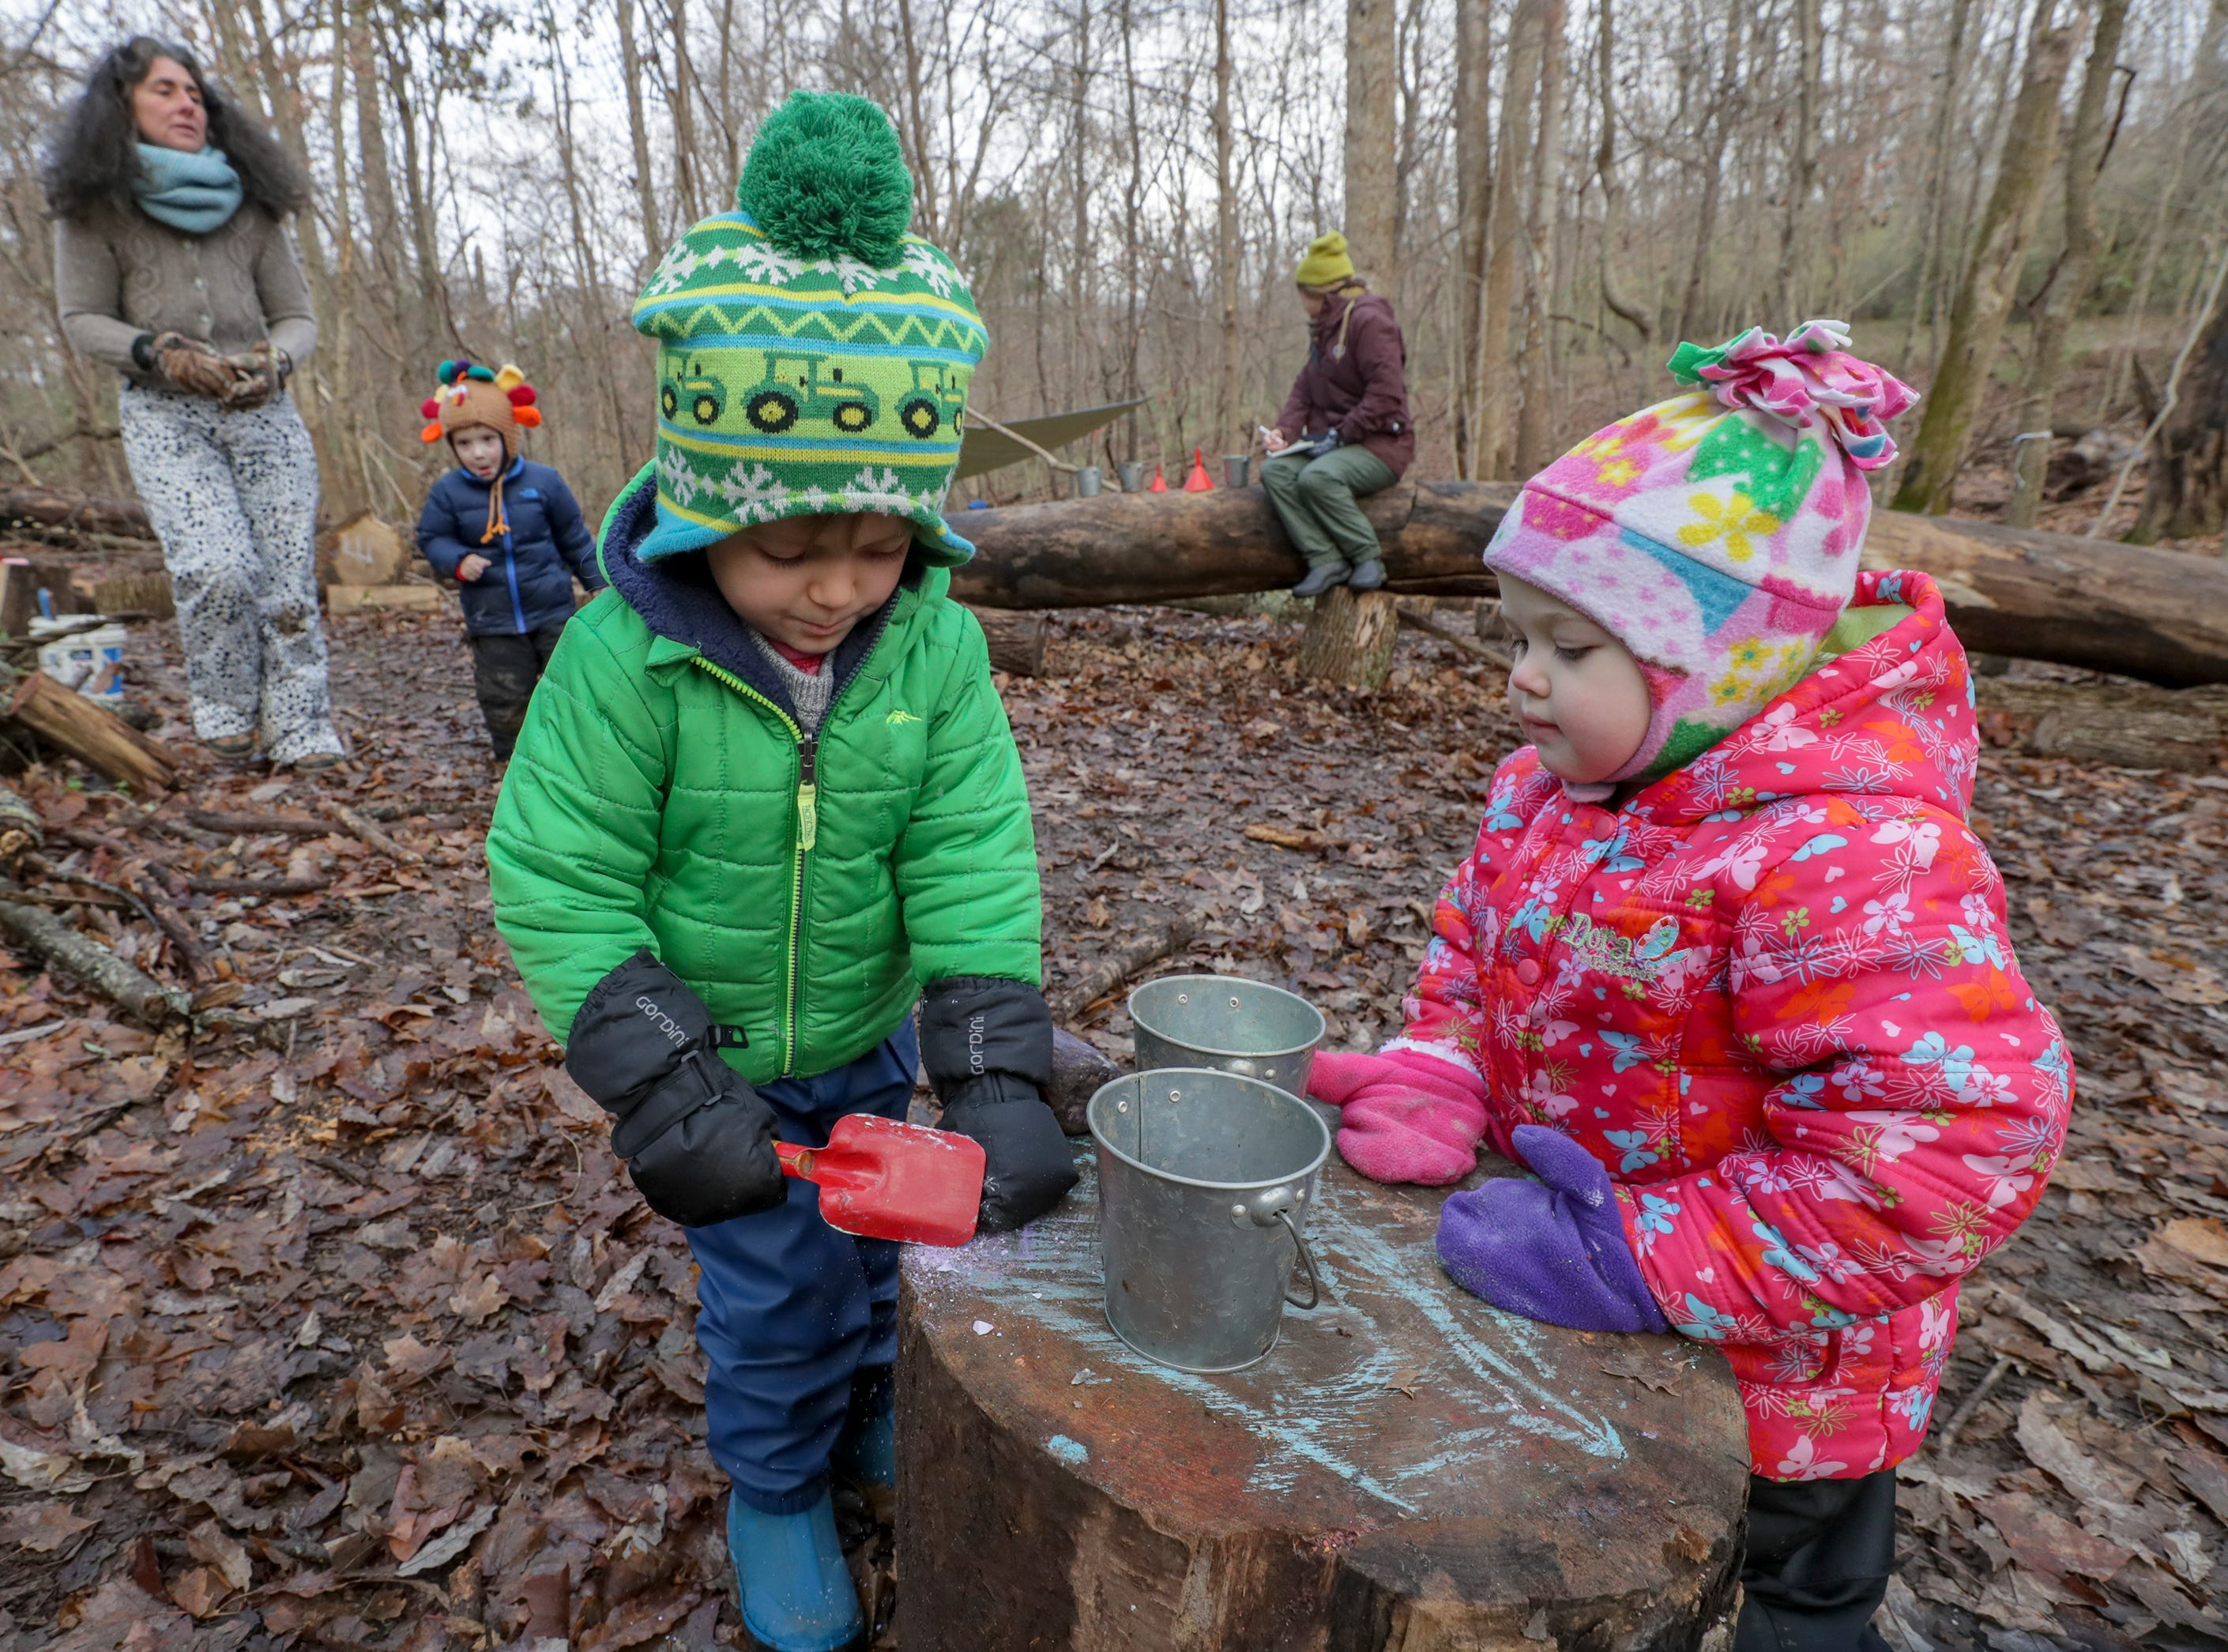 Ferris Devlin and Hannah Rose O'Connell work to make a concoction from leaves, twigs, mud, stream water and chalk at Thrive Forest School at Creasey Mahan Nature Preserve.November 19, 2018